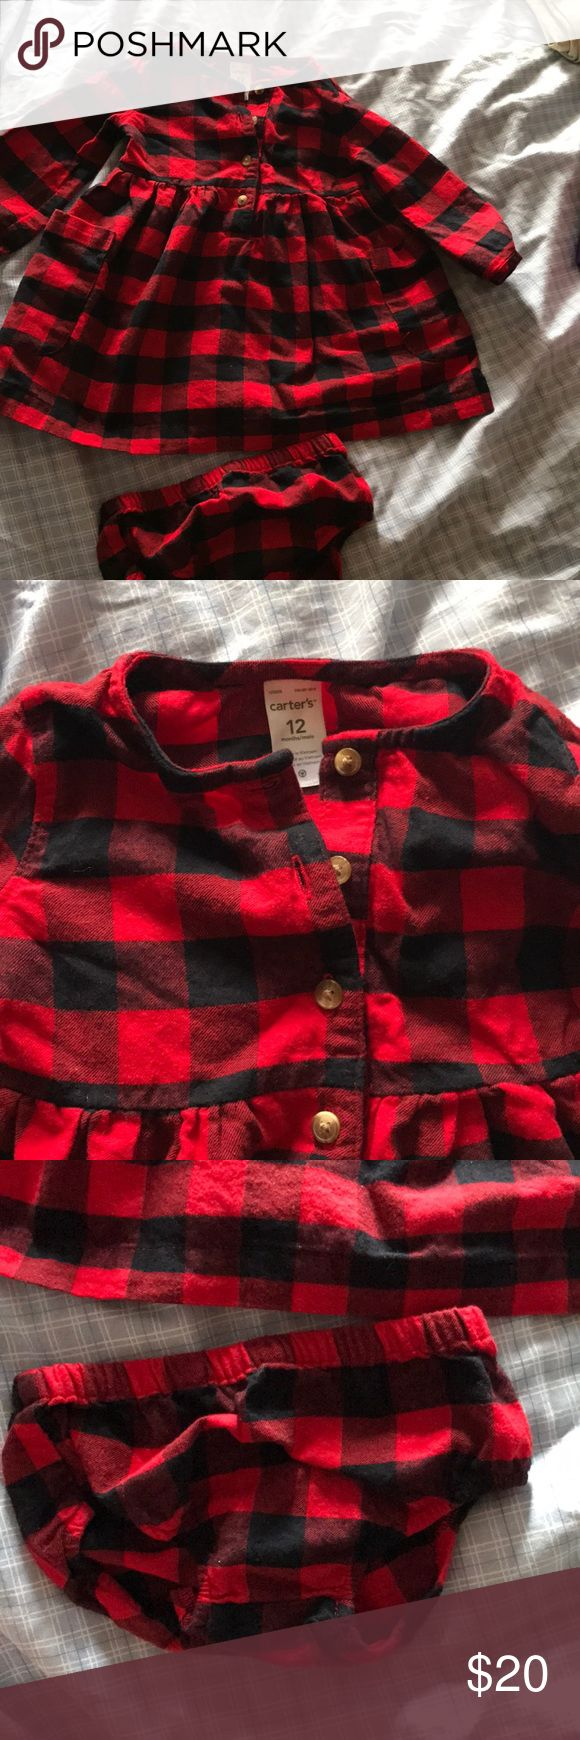 •Carters • Red Plaid Dress • Carters Red Plaid dress. Wore for about an hour for photos. Size: 12months  •100% Cotton  Washed with Dreft laundry detergent. Carter's Dresses